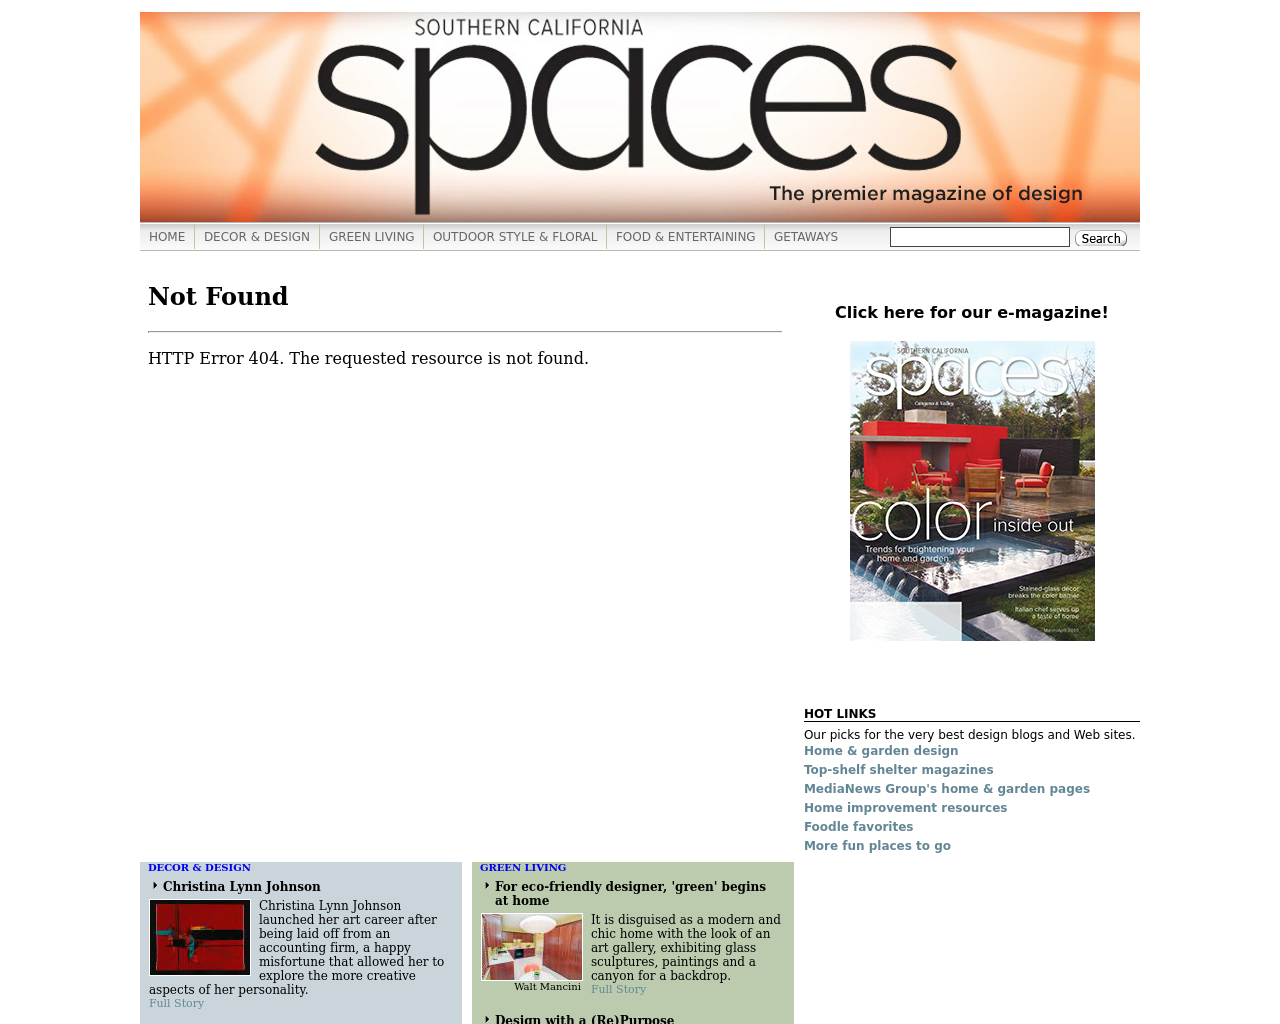 Southern-California-Spaces-Magazine-Advertising-Reviews-Pricing